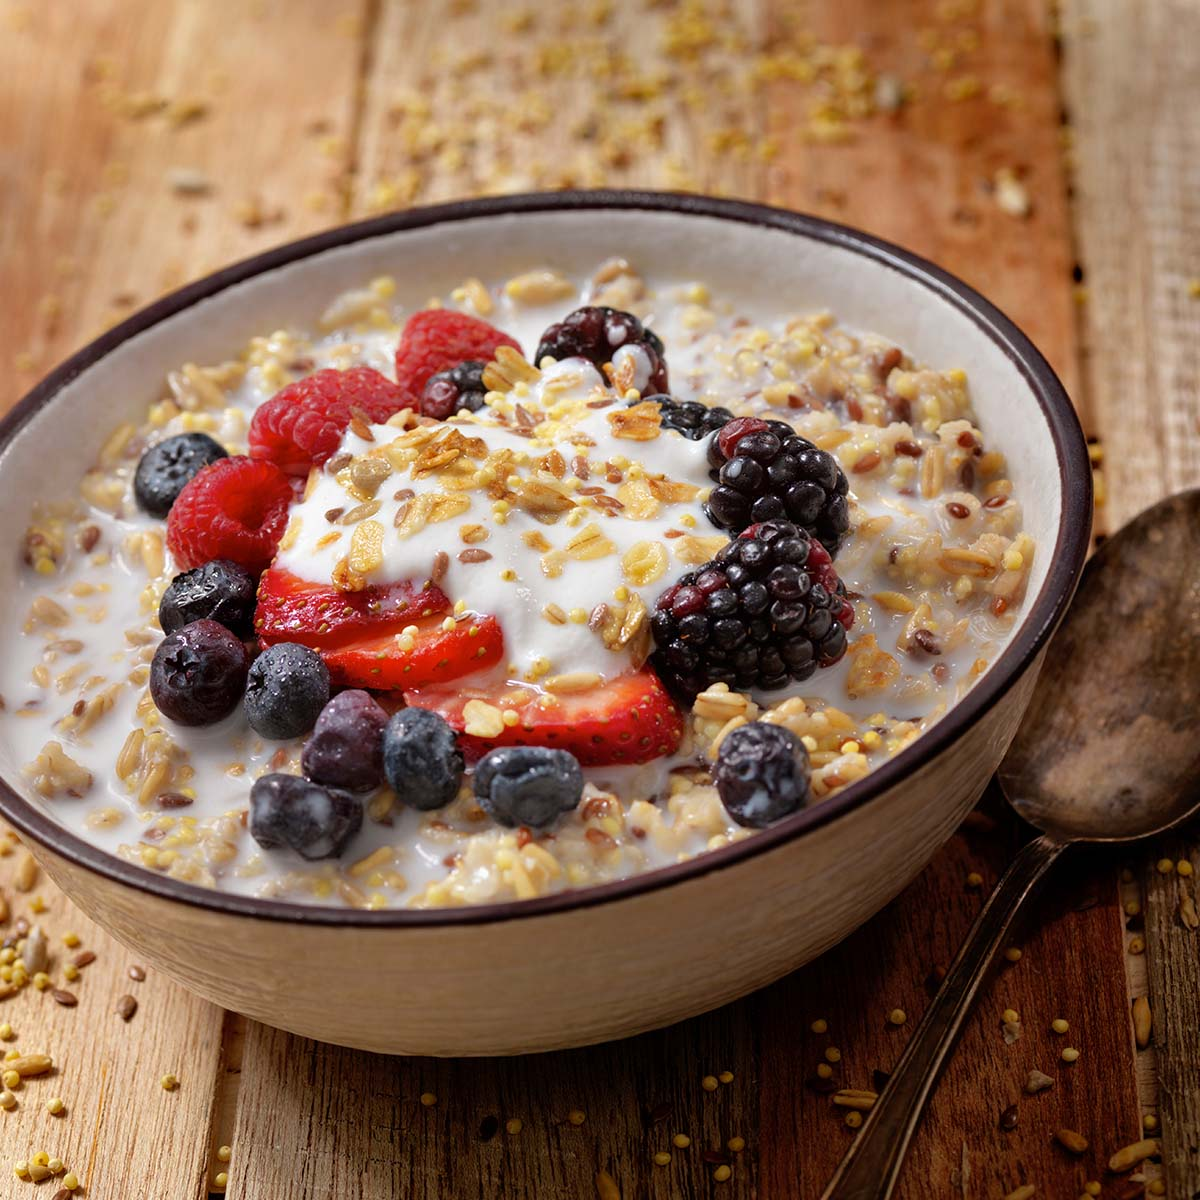 bowl of oatmeal with fruit on top